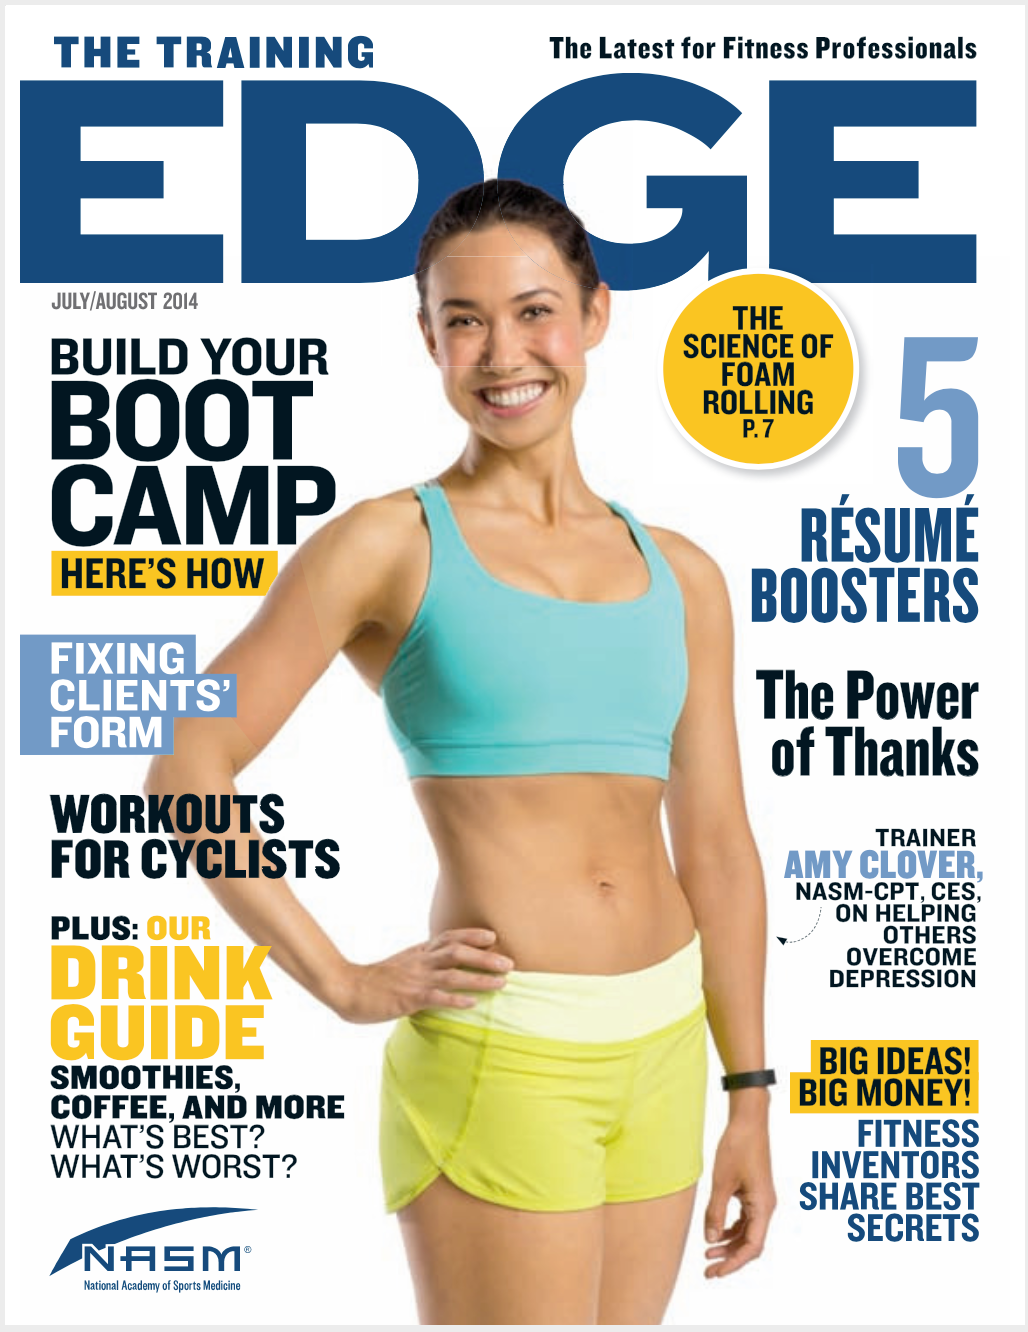 THE TRAINING EDGE MAGAZINE, JULY/AUGUST 2014:The Next Fit Thing